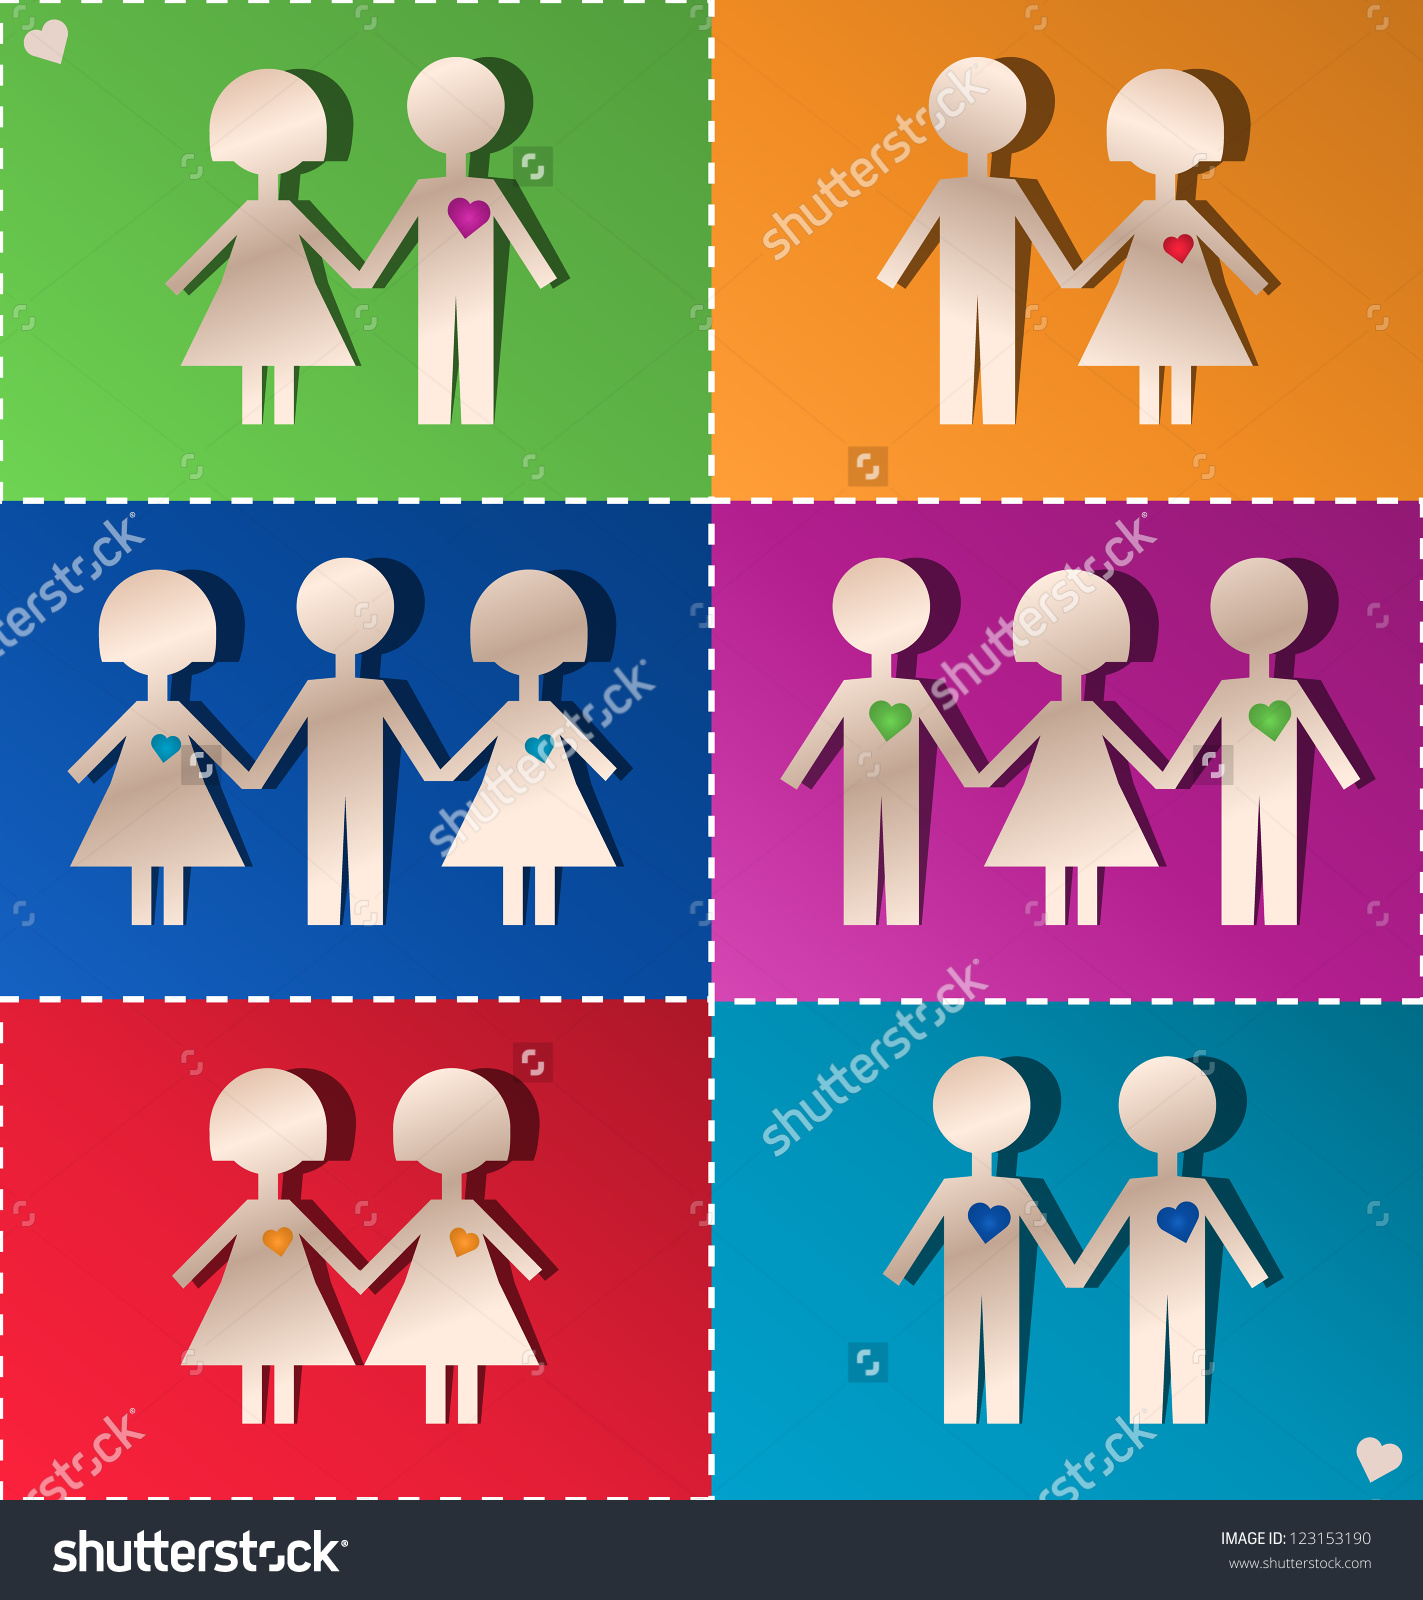 Paper Clipping Couples Threesomes Stock Vector 123153190.